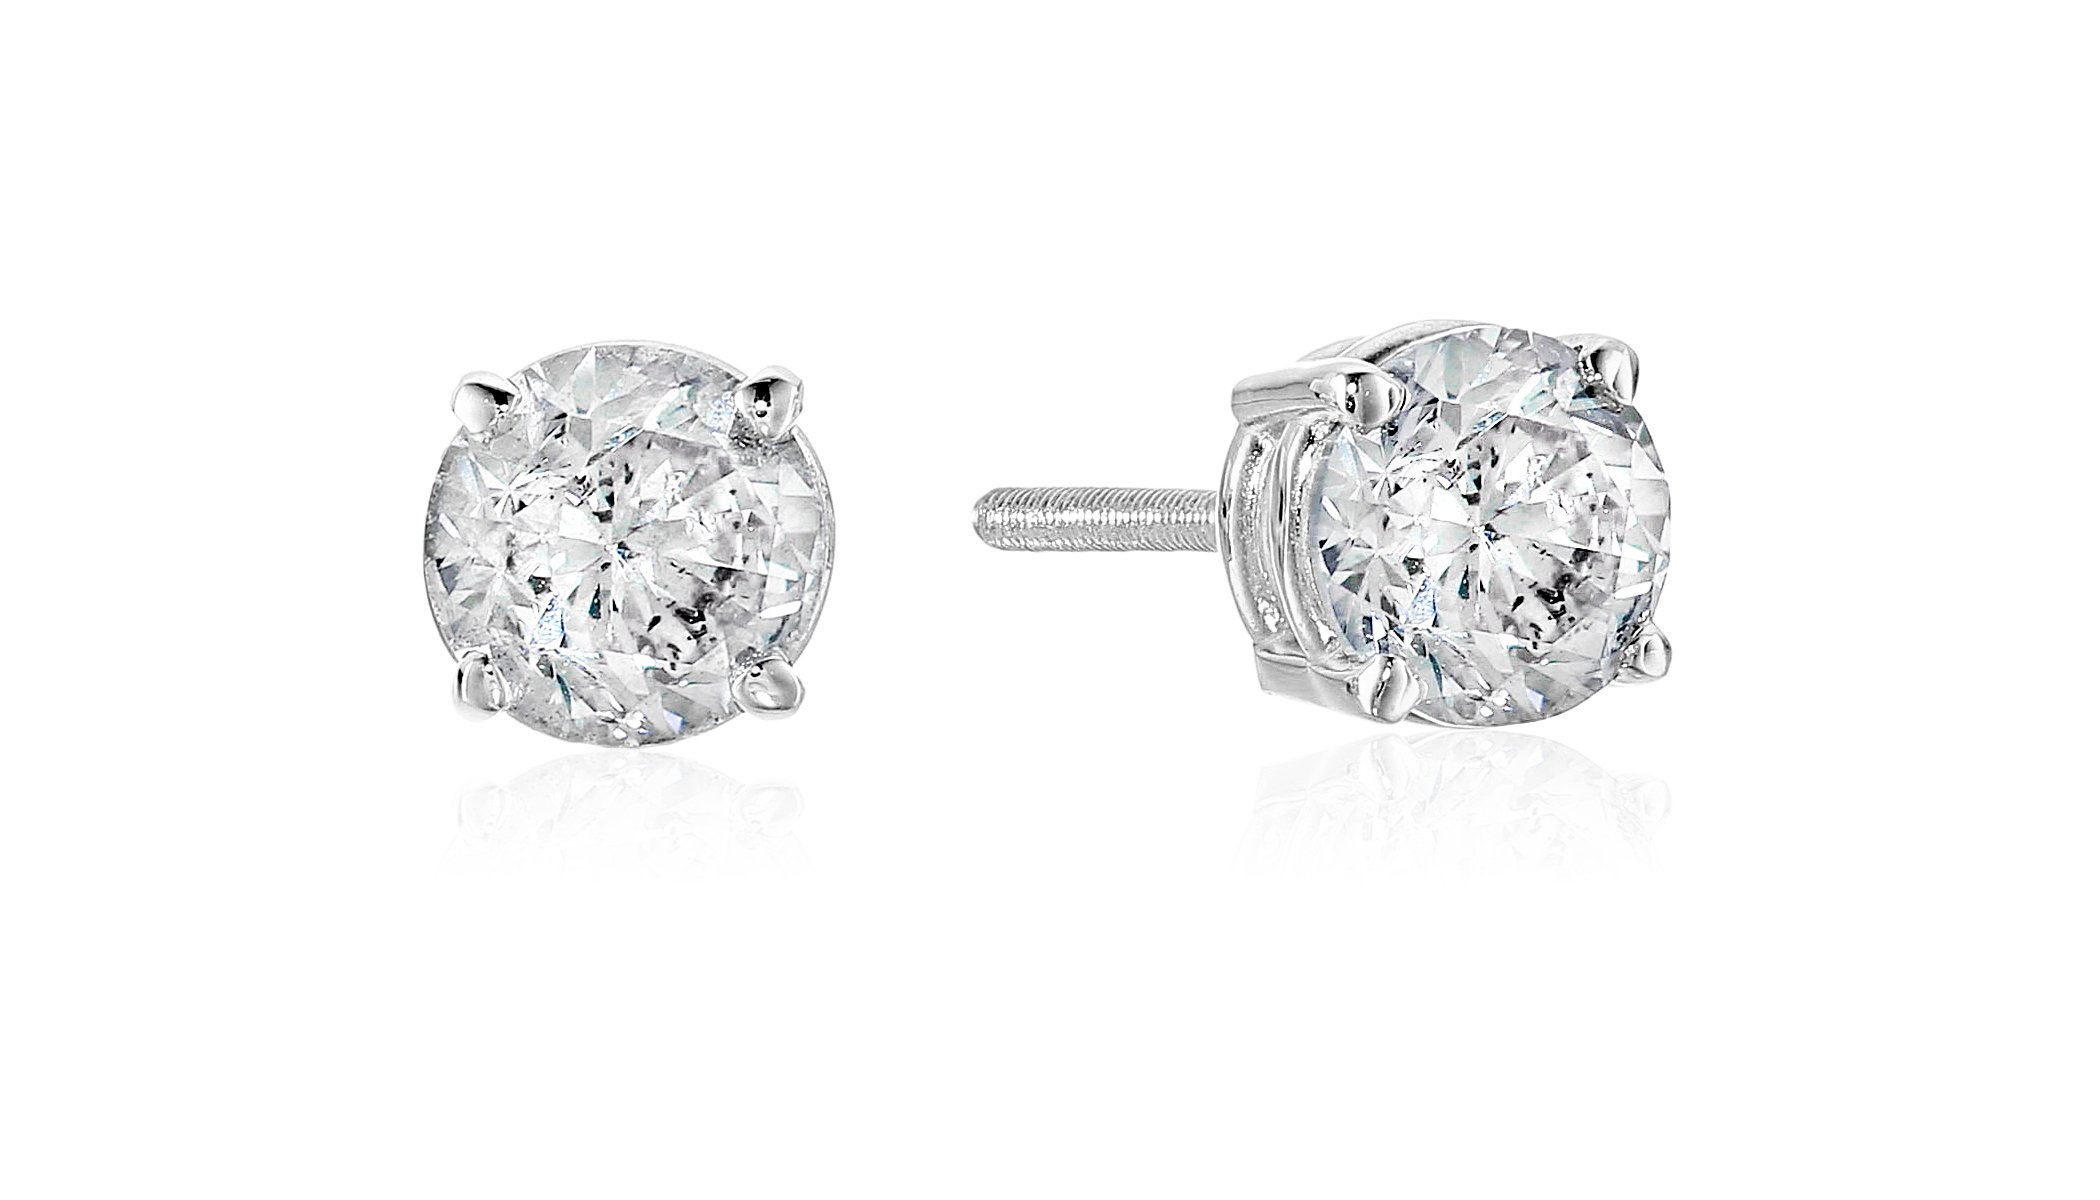 14k White Gold Diamond with Screw Back and Post Stud Earrings (1cttw, J-K Color, I2-I3 Clarity)